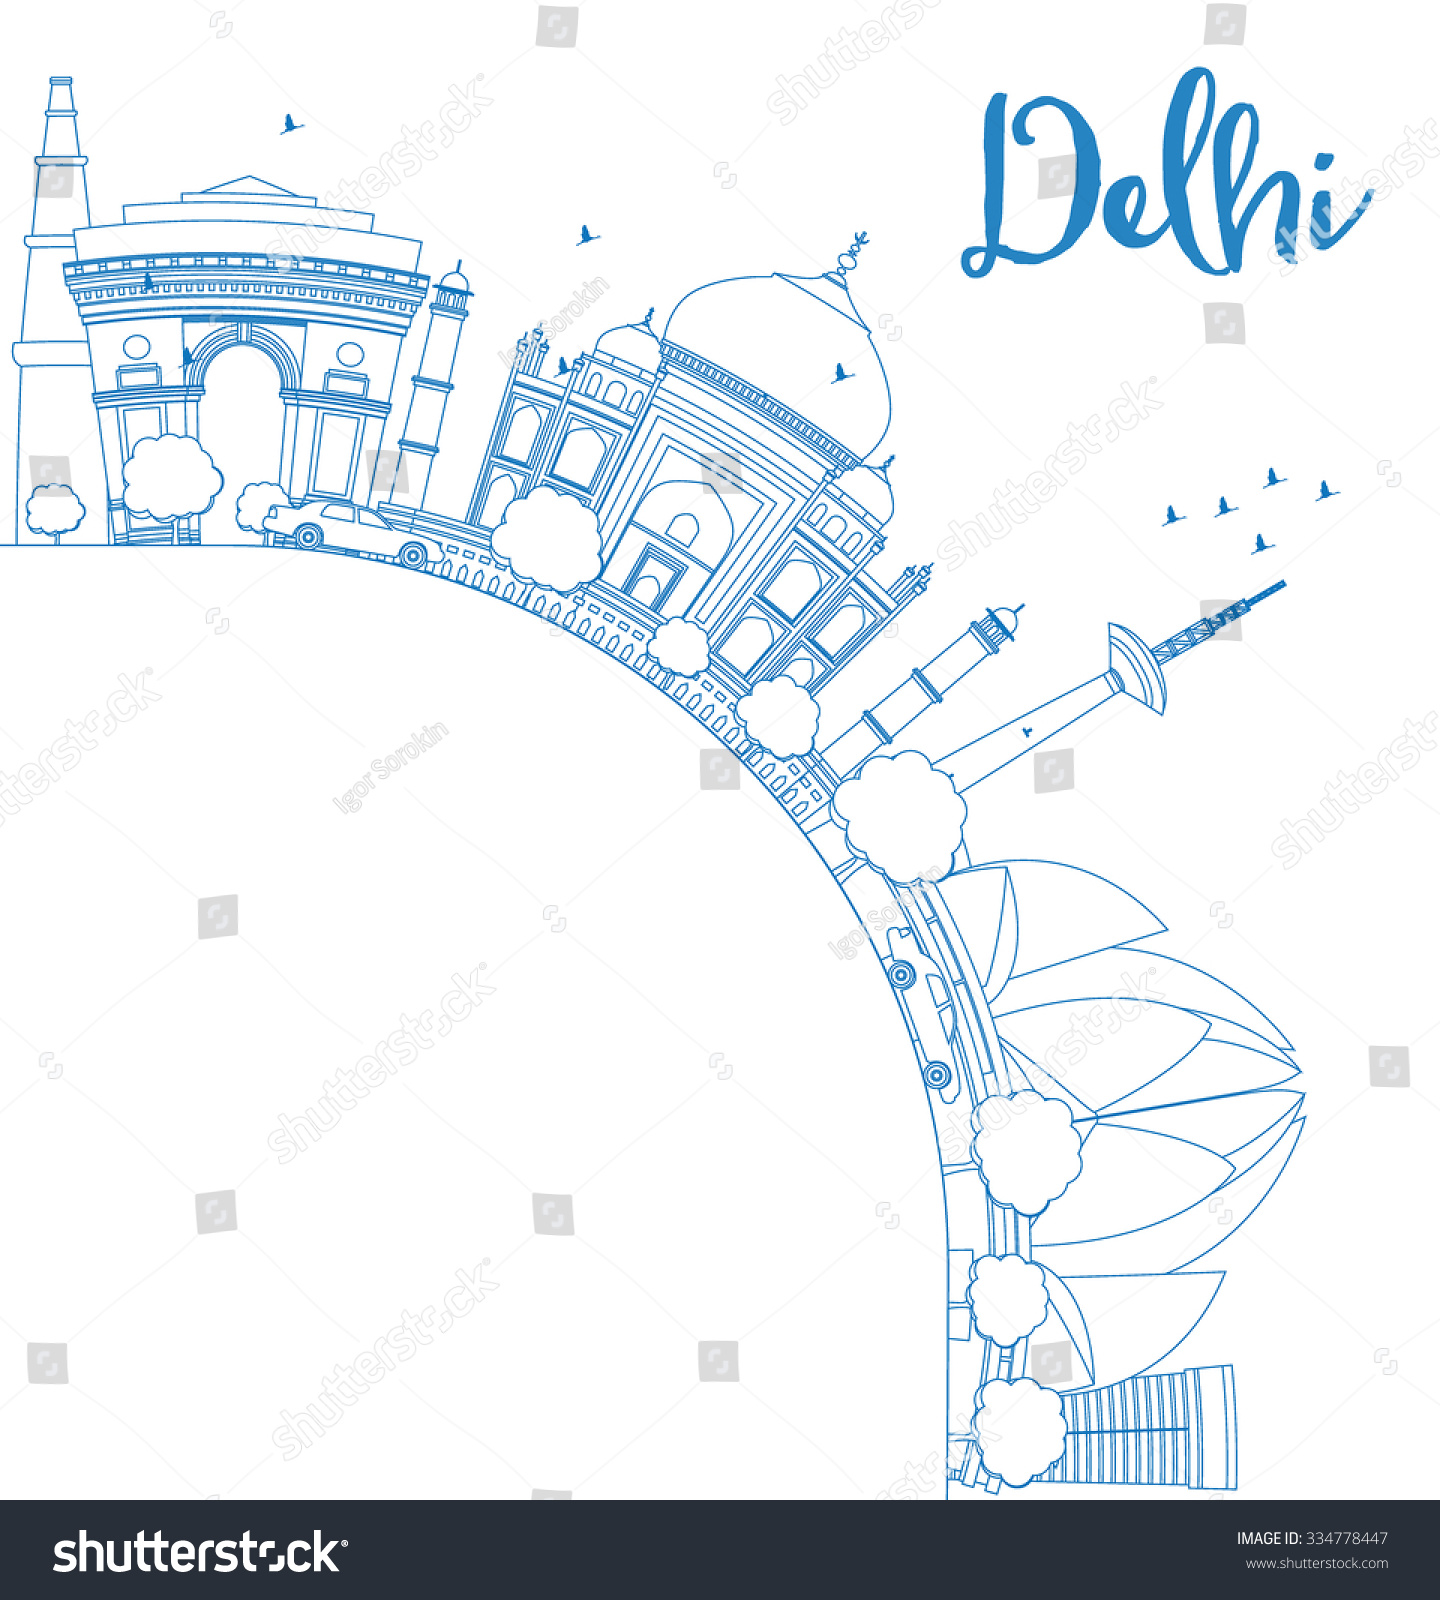 Outline athens skyline with blue buildings and copy space stock vector - Outline Delhi Skyline With Blue Landmarks And Copy Space Business Travel And Tourism Concept With